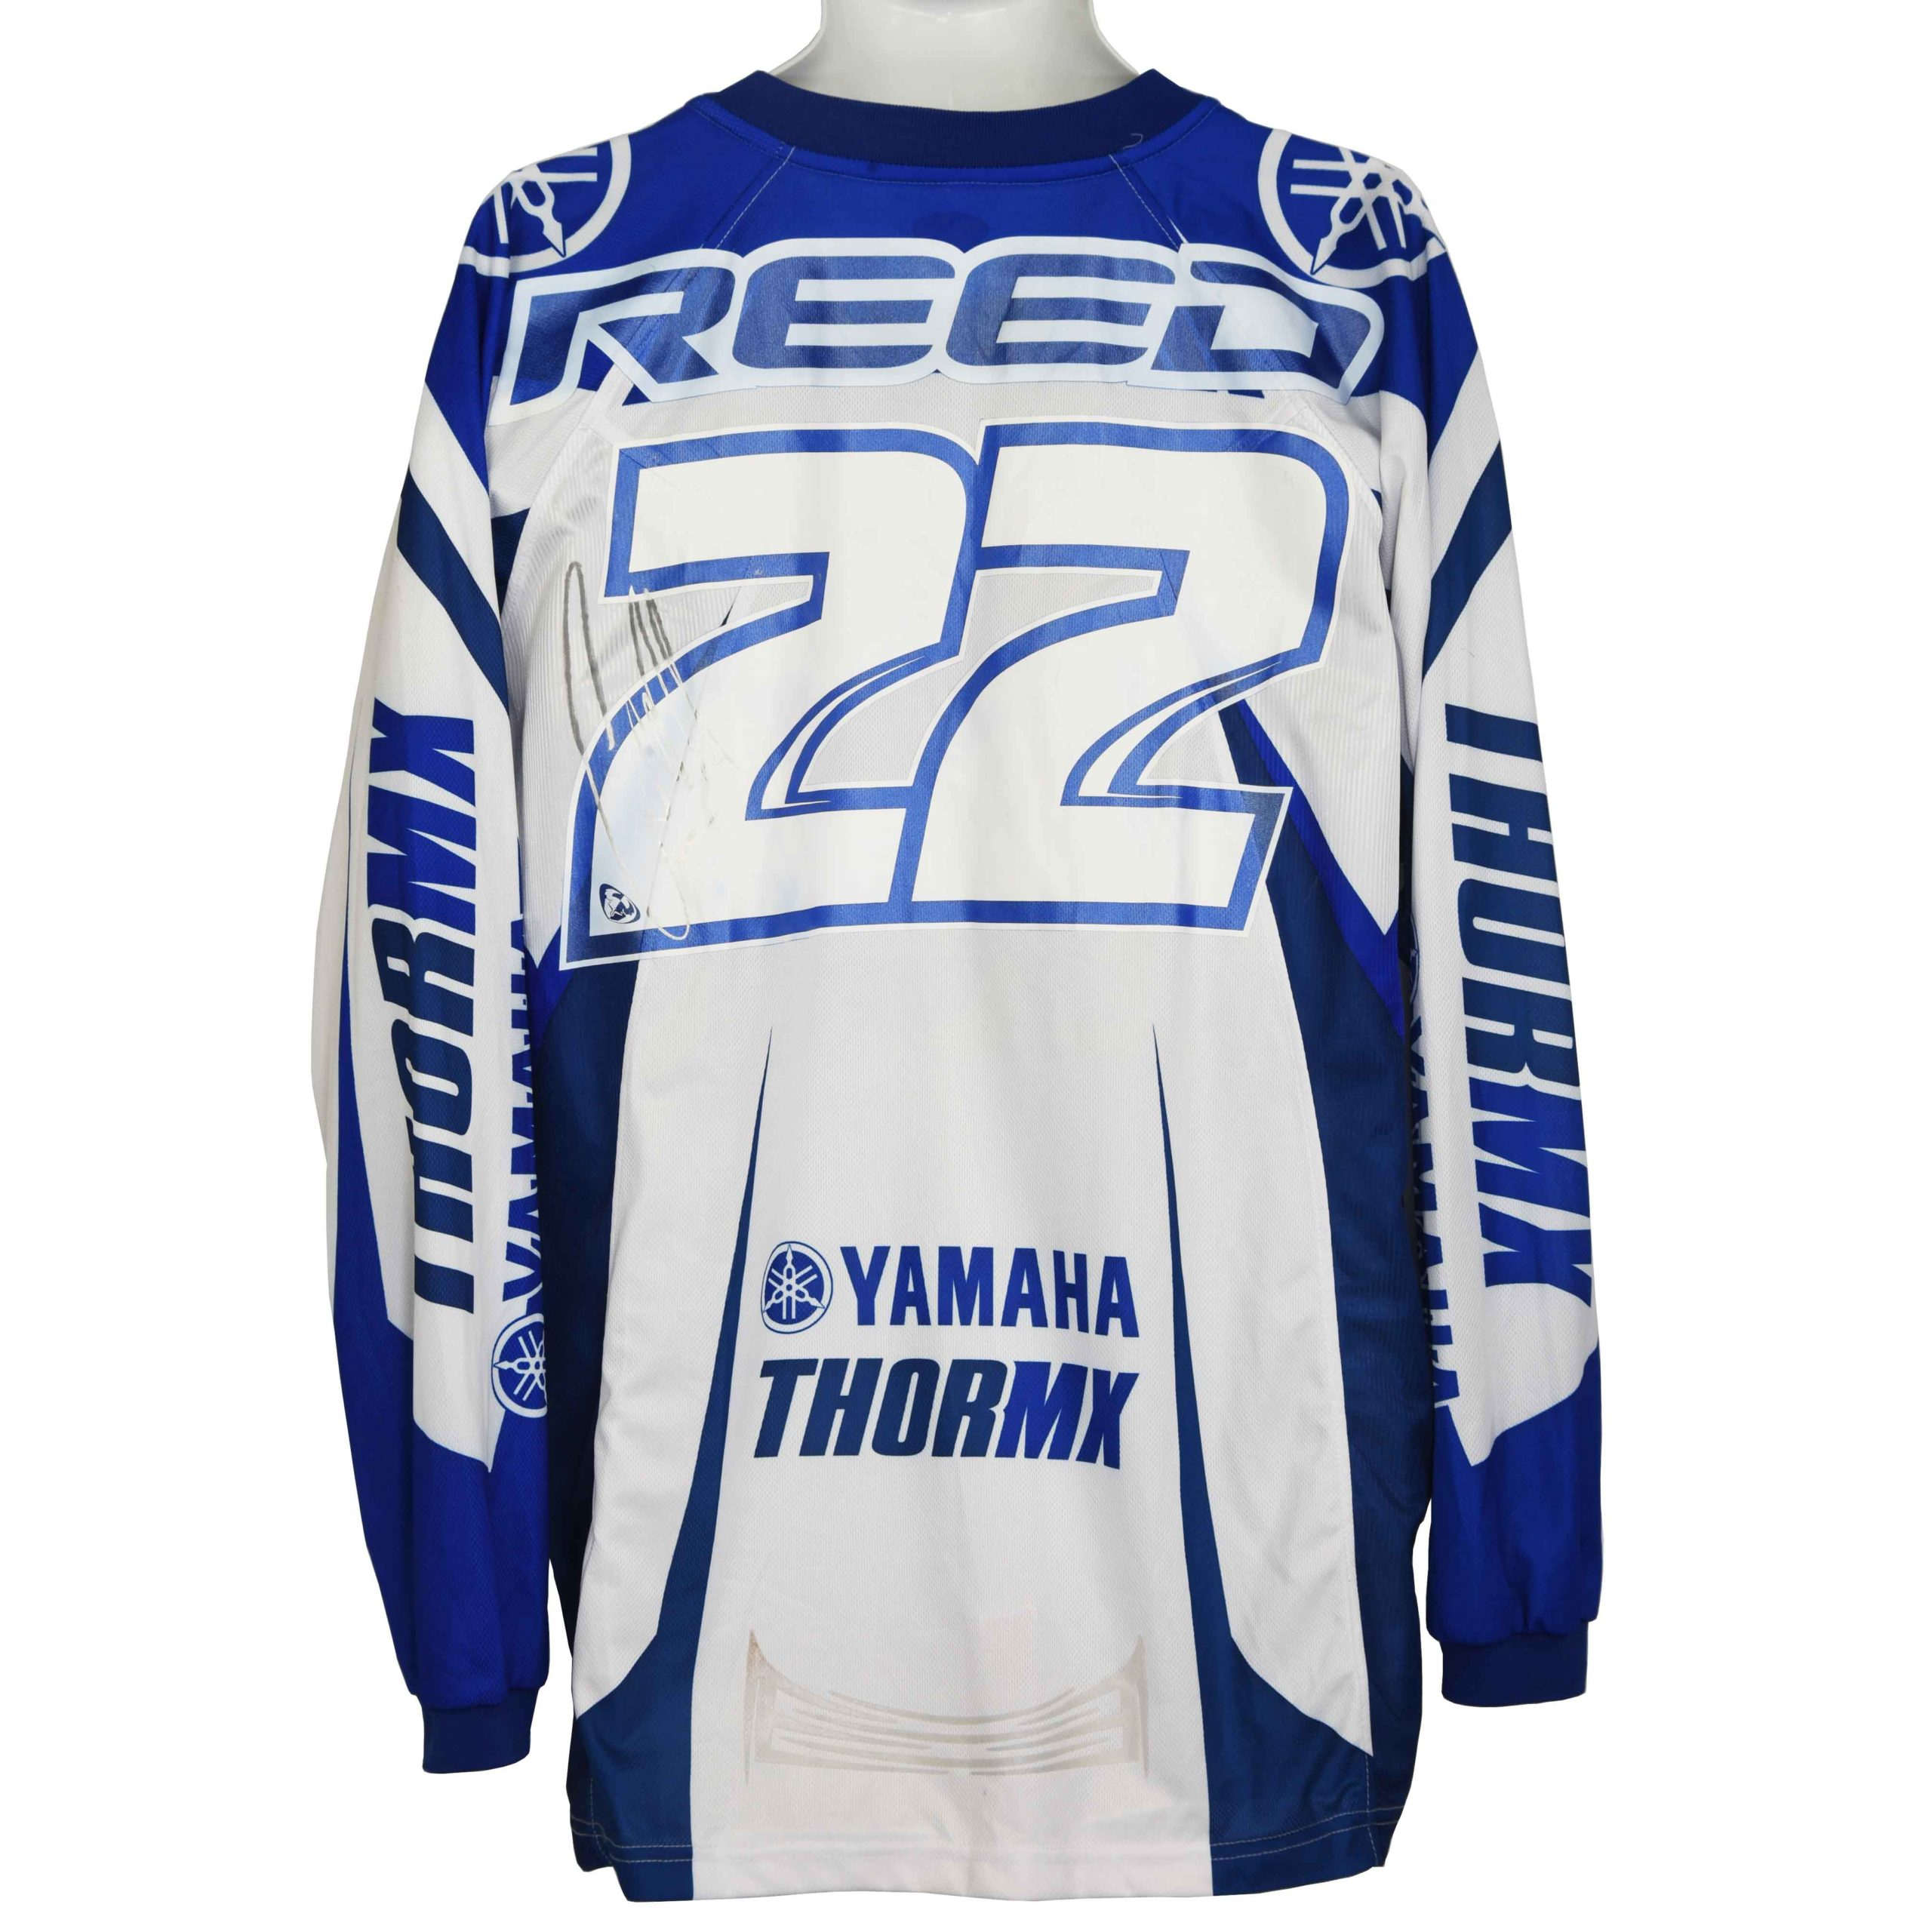 chad reed jersey for sale